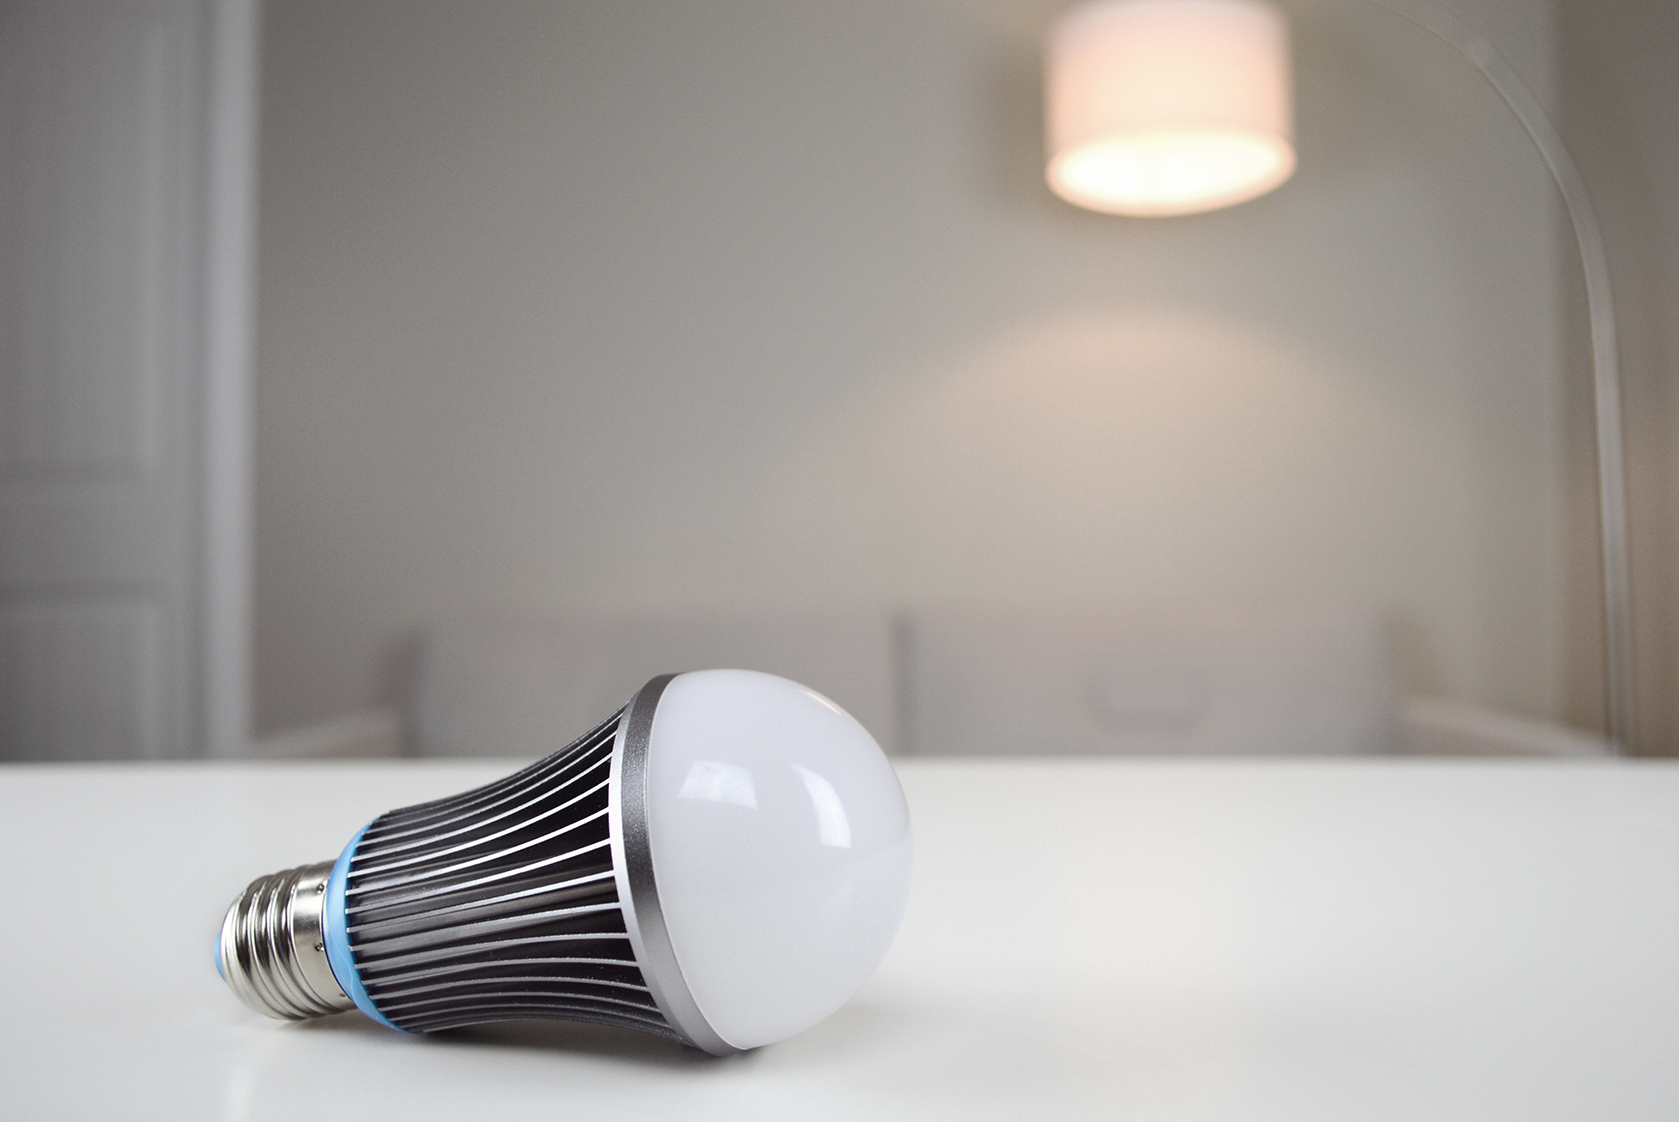 The Drift Light LED Recreates a Sunset For Better Sleep